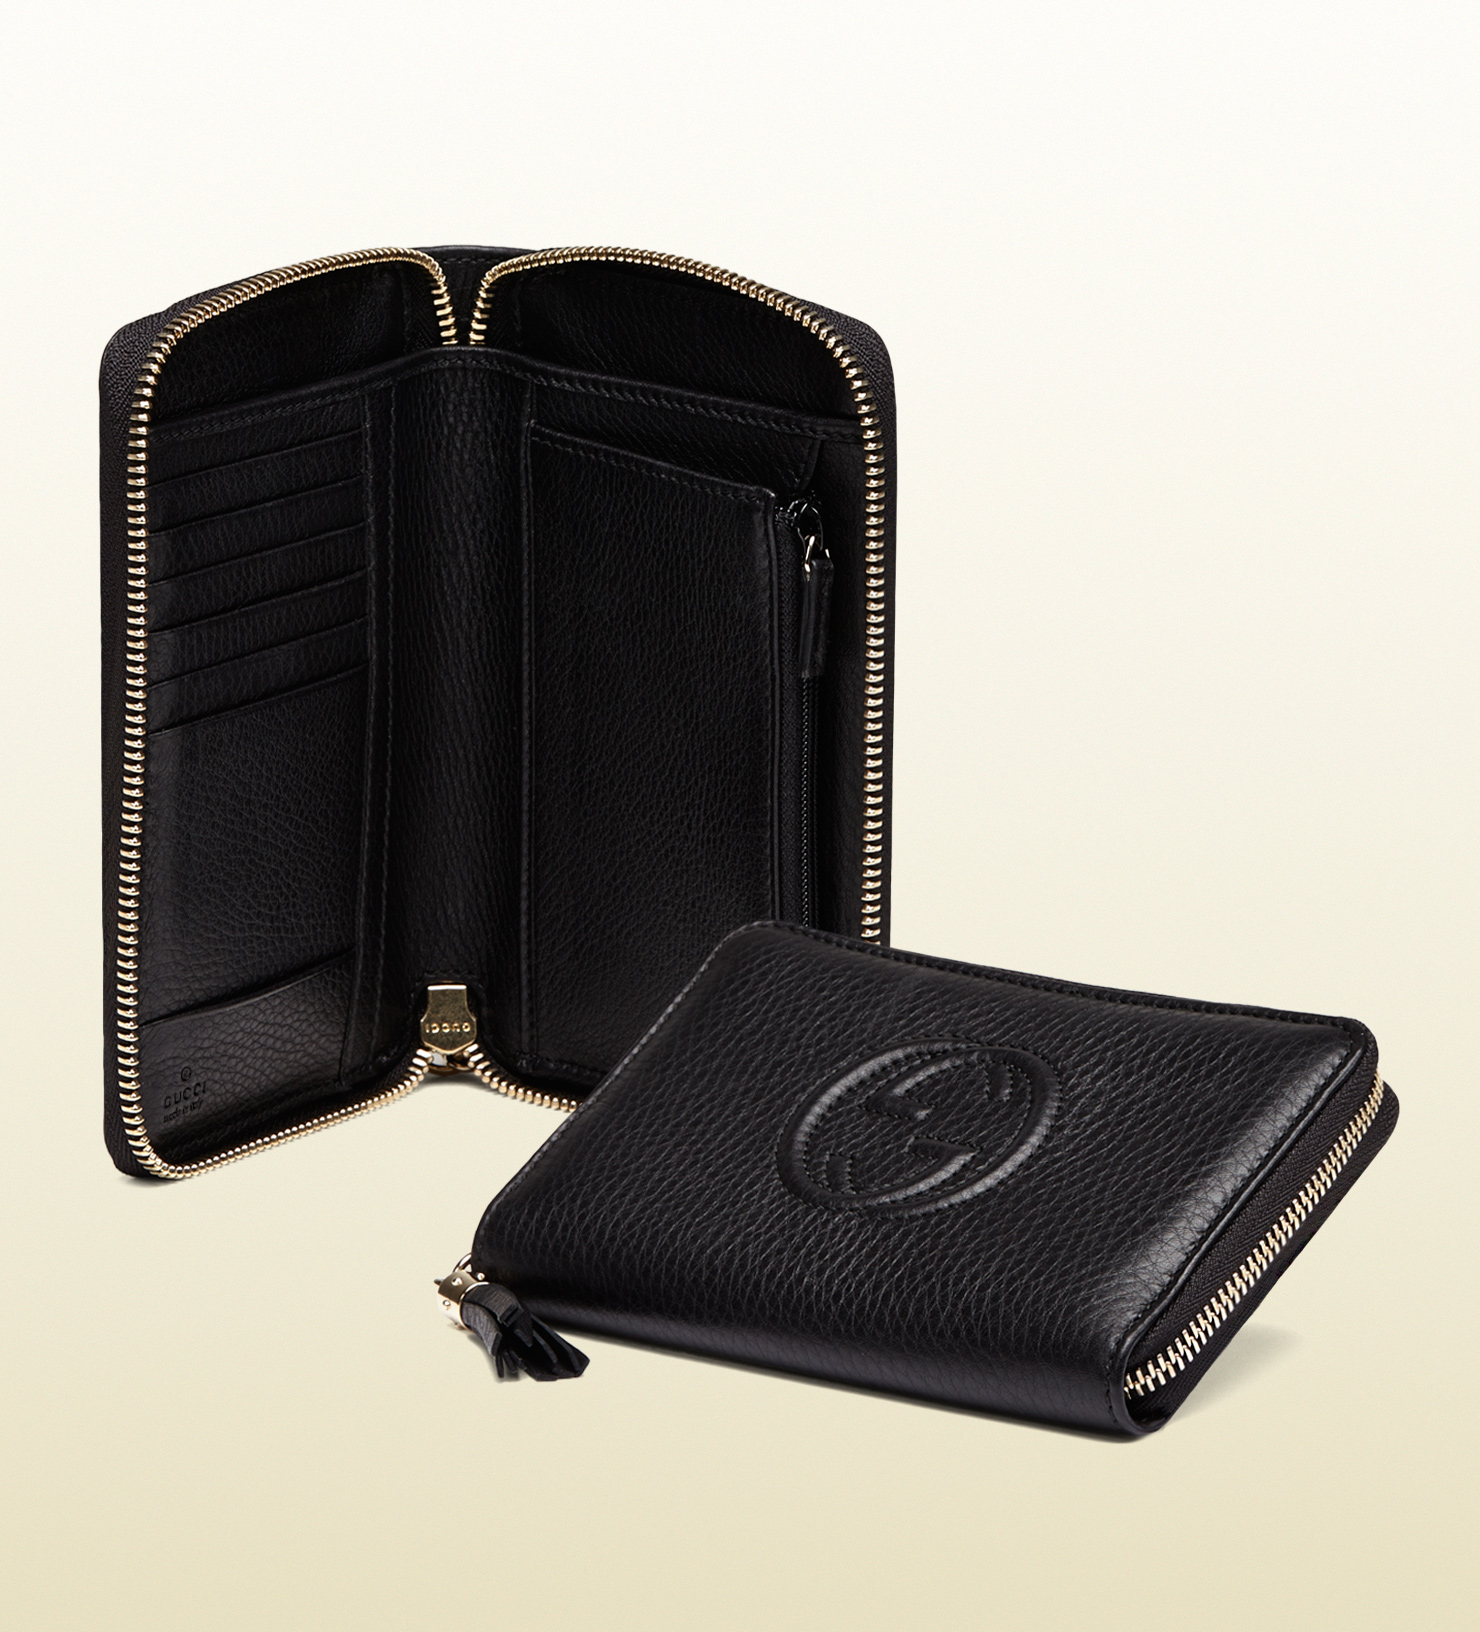 06efd0370503 Gucci Black Soho Zip Around Wallet | Stanford Center for Opportunity ...